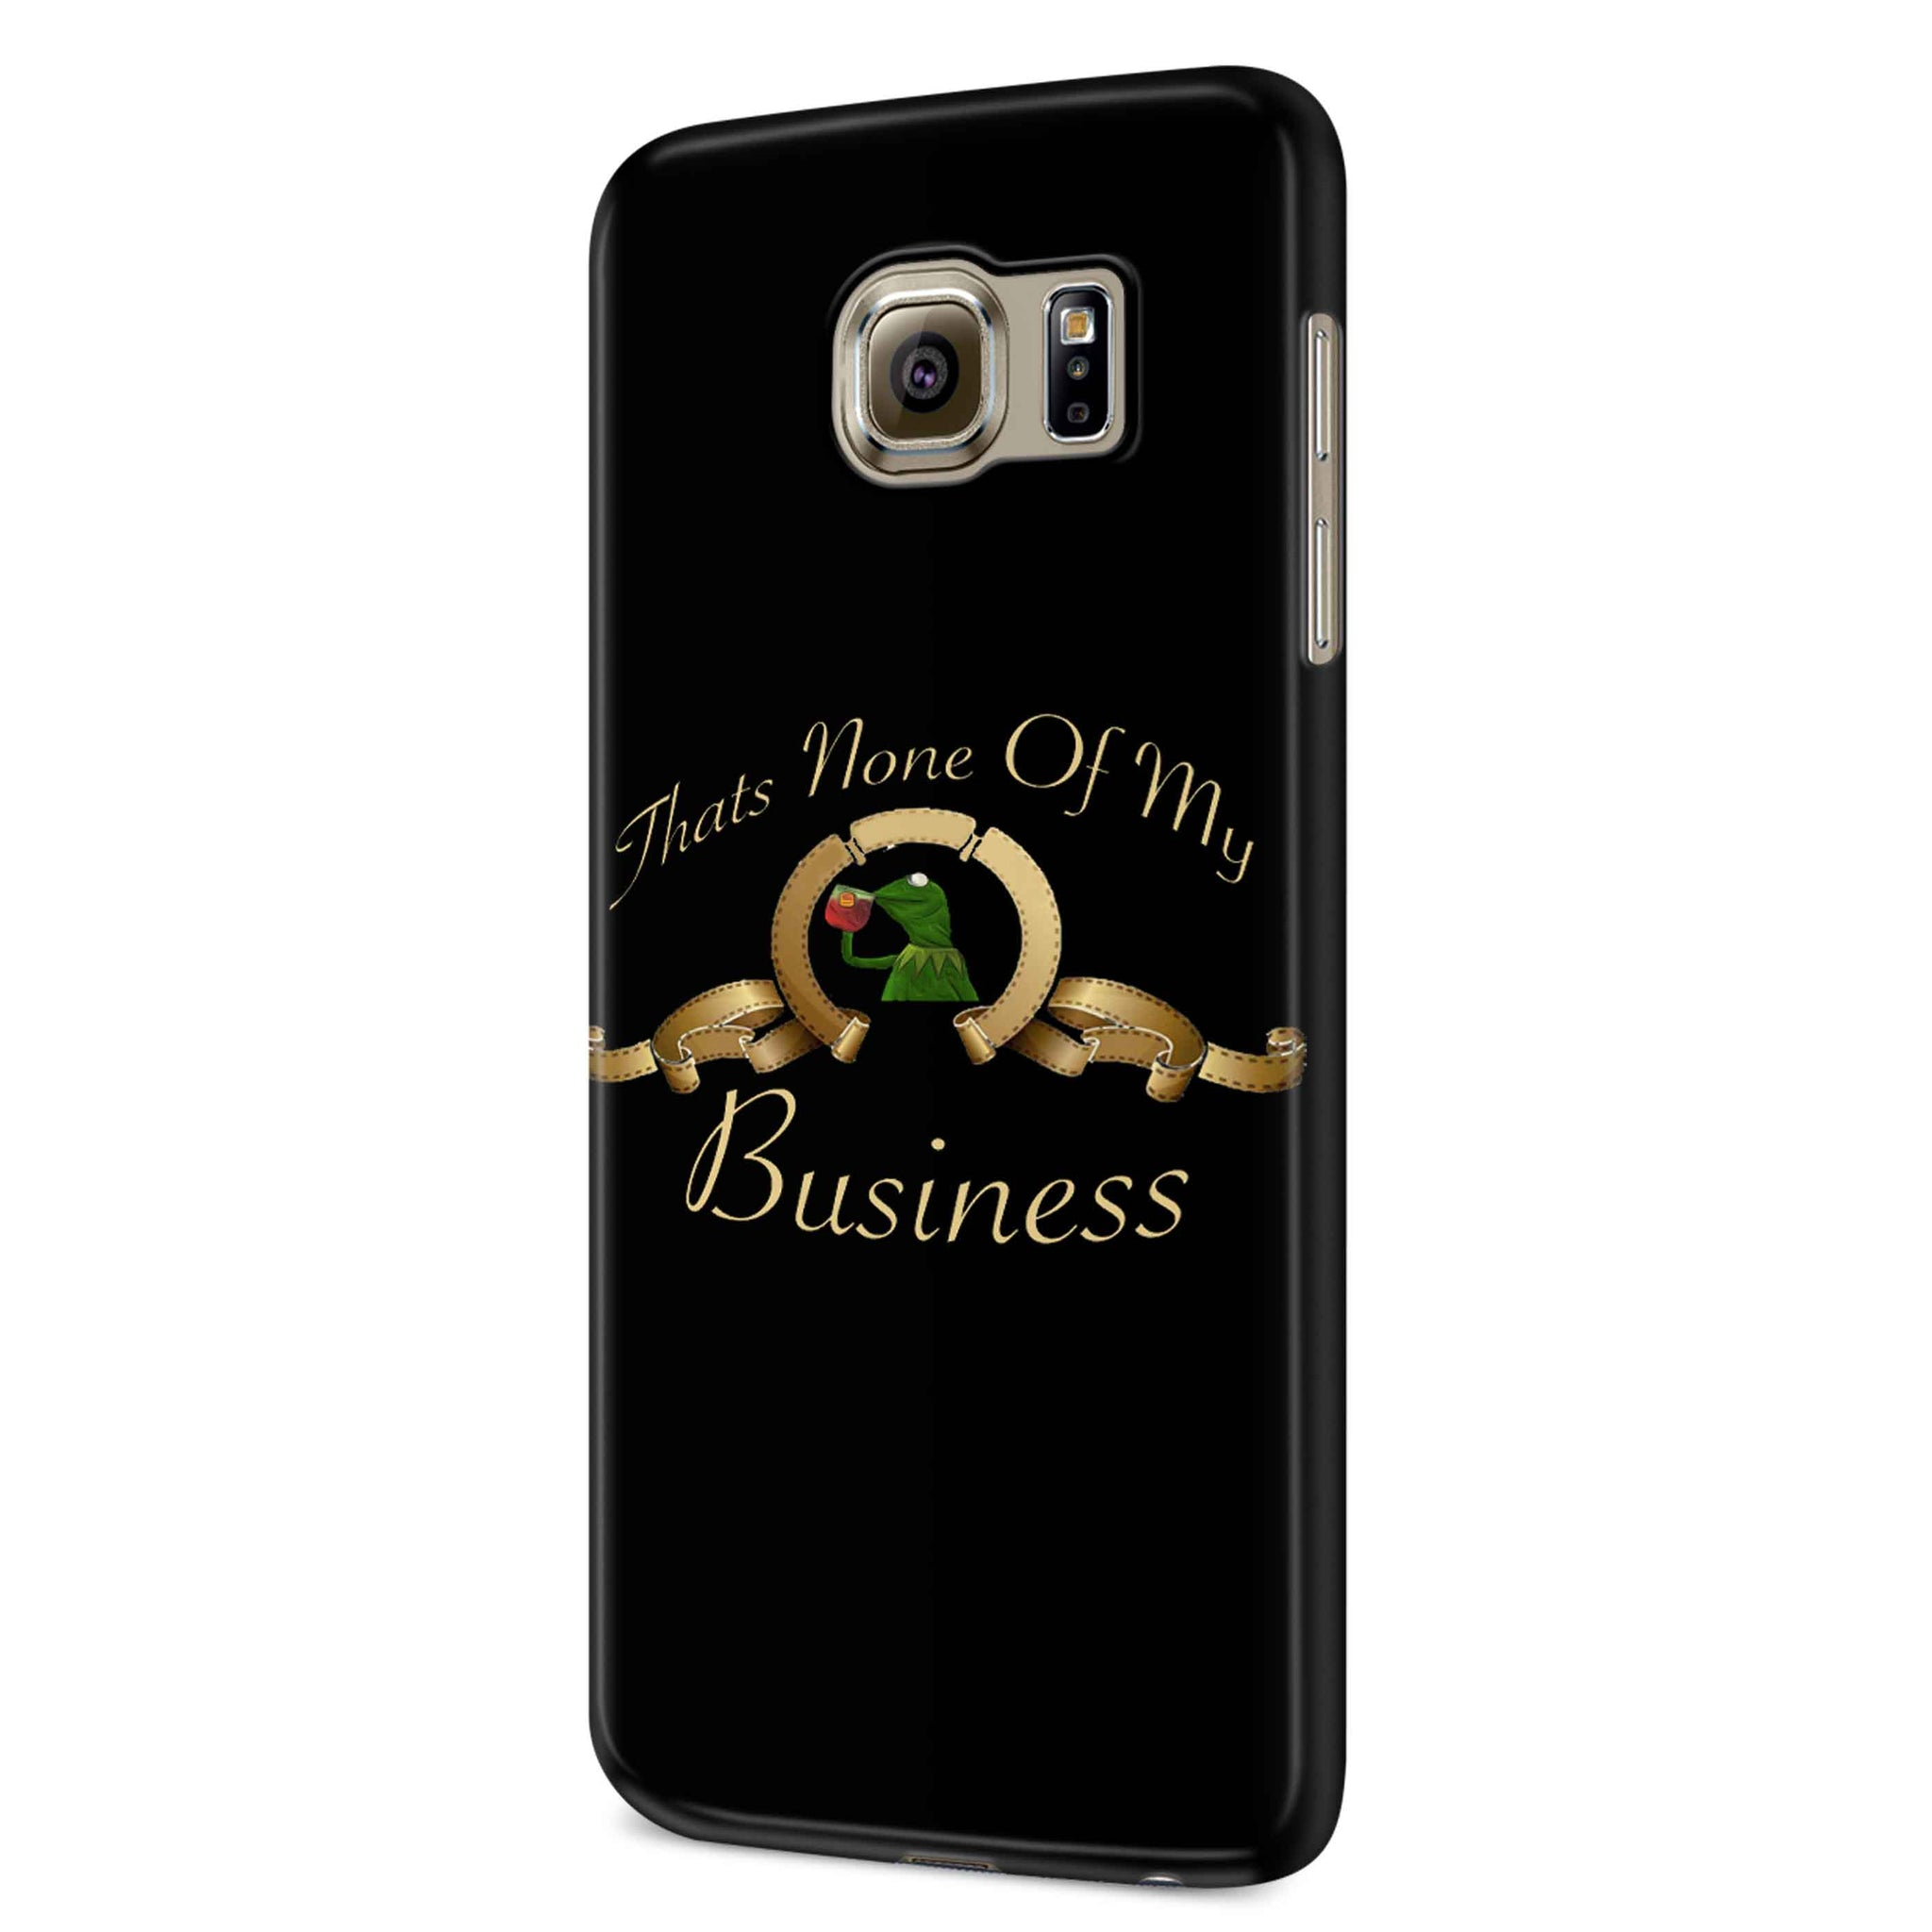 Thats None Of My Business Kermit Samsung Galaxy S6 S6 Edge Plus/ S7 S7 Edge / S8 S8 Plus / S9 S9 plus 3D Case